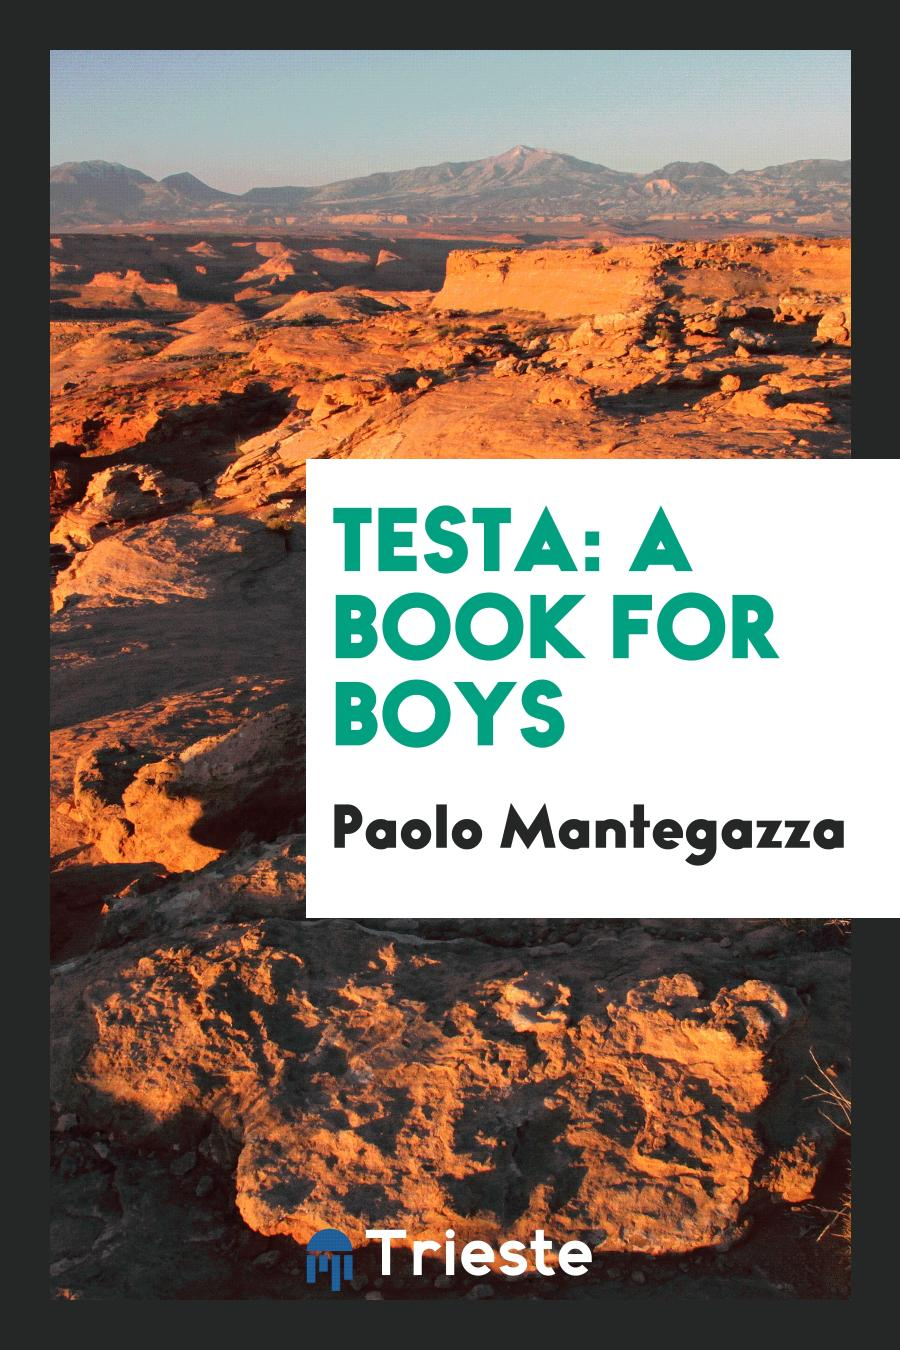 Testa: A Book for Boys